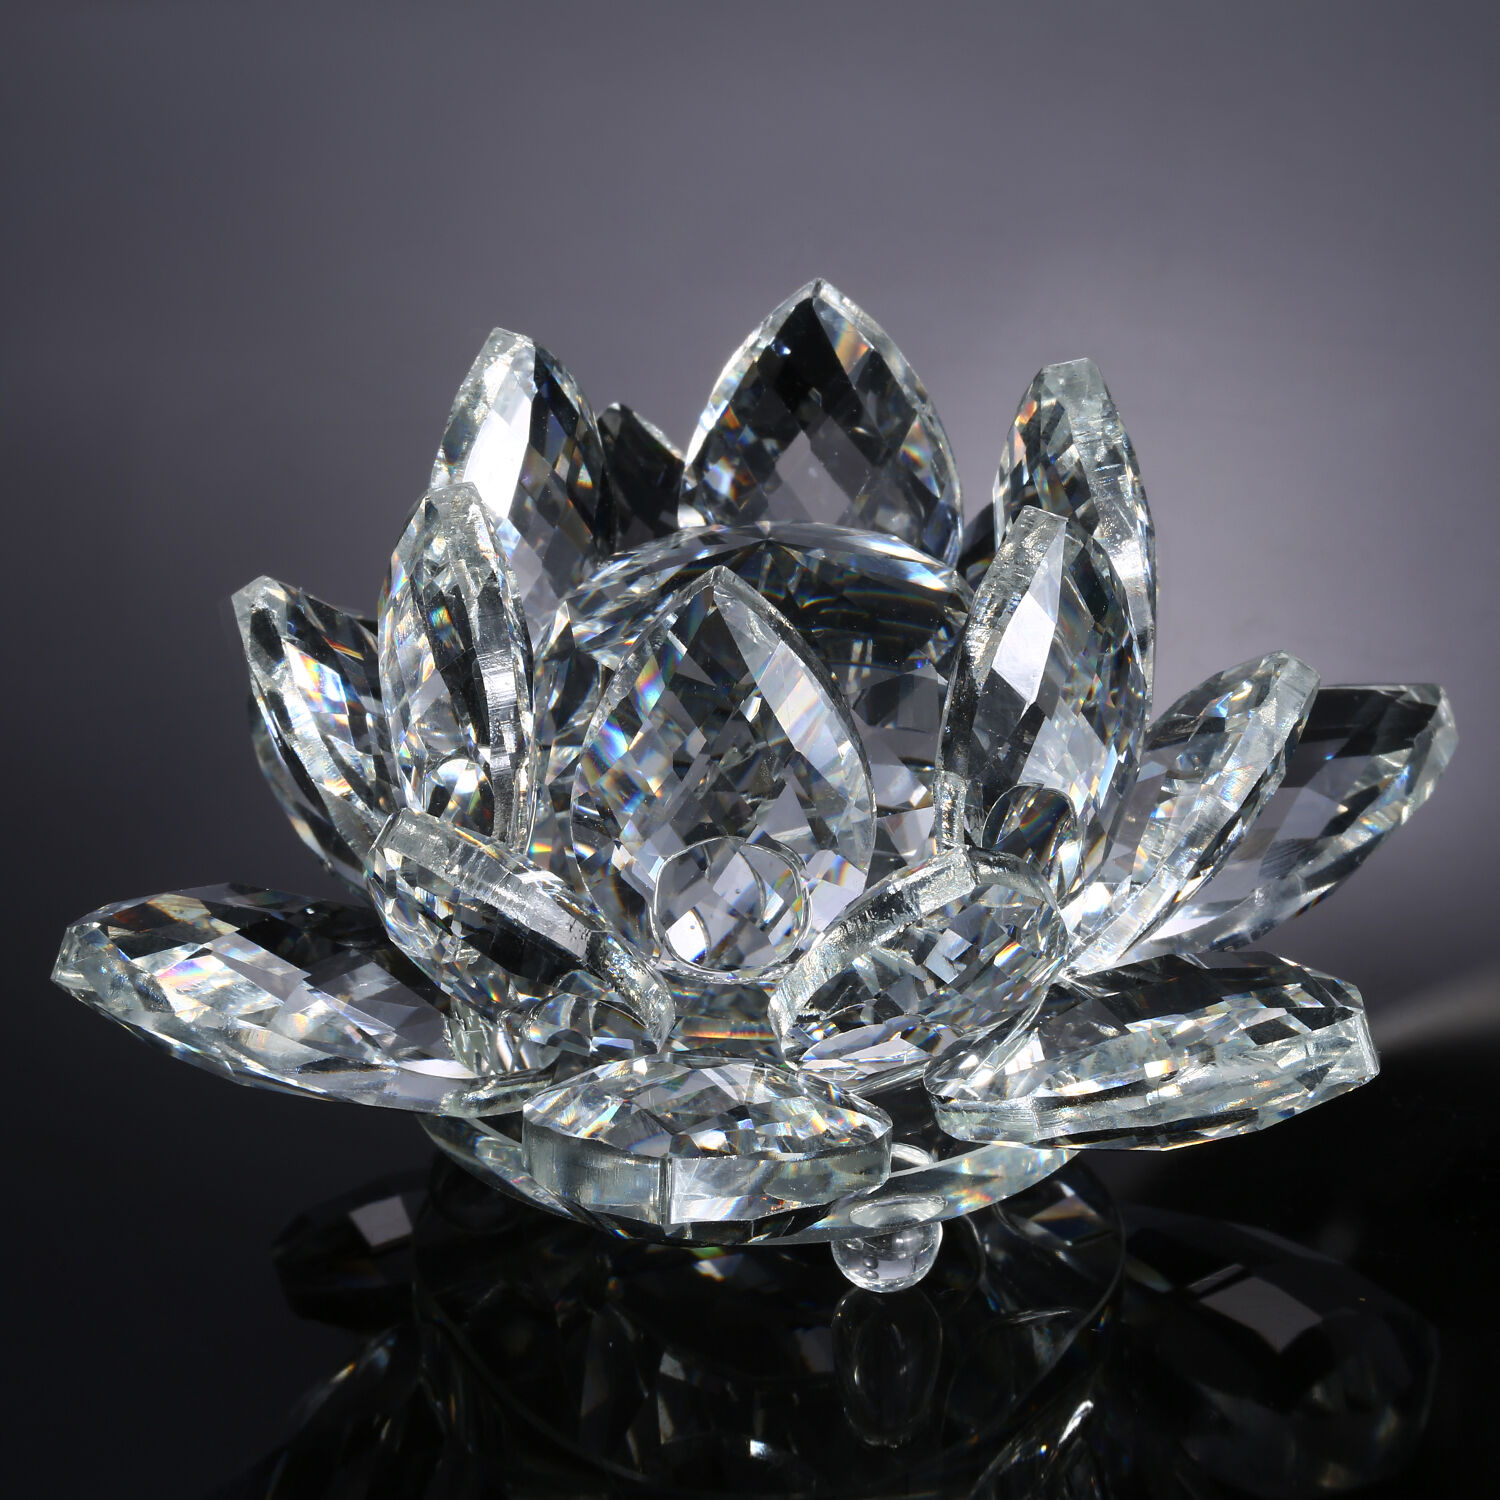 Neewer 4 Clear Crystal Glass Lotus Flower For Wedding Home Office